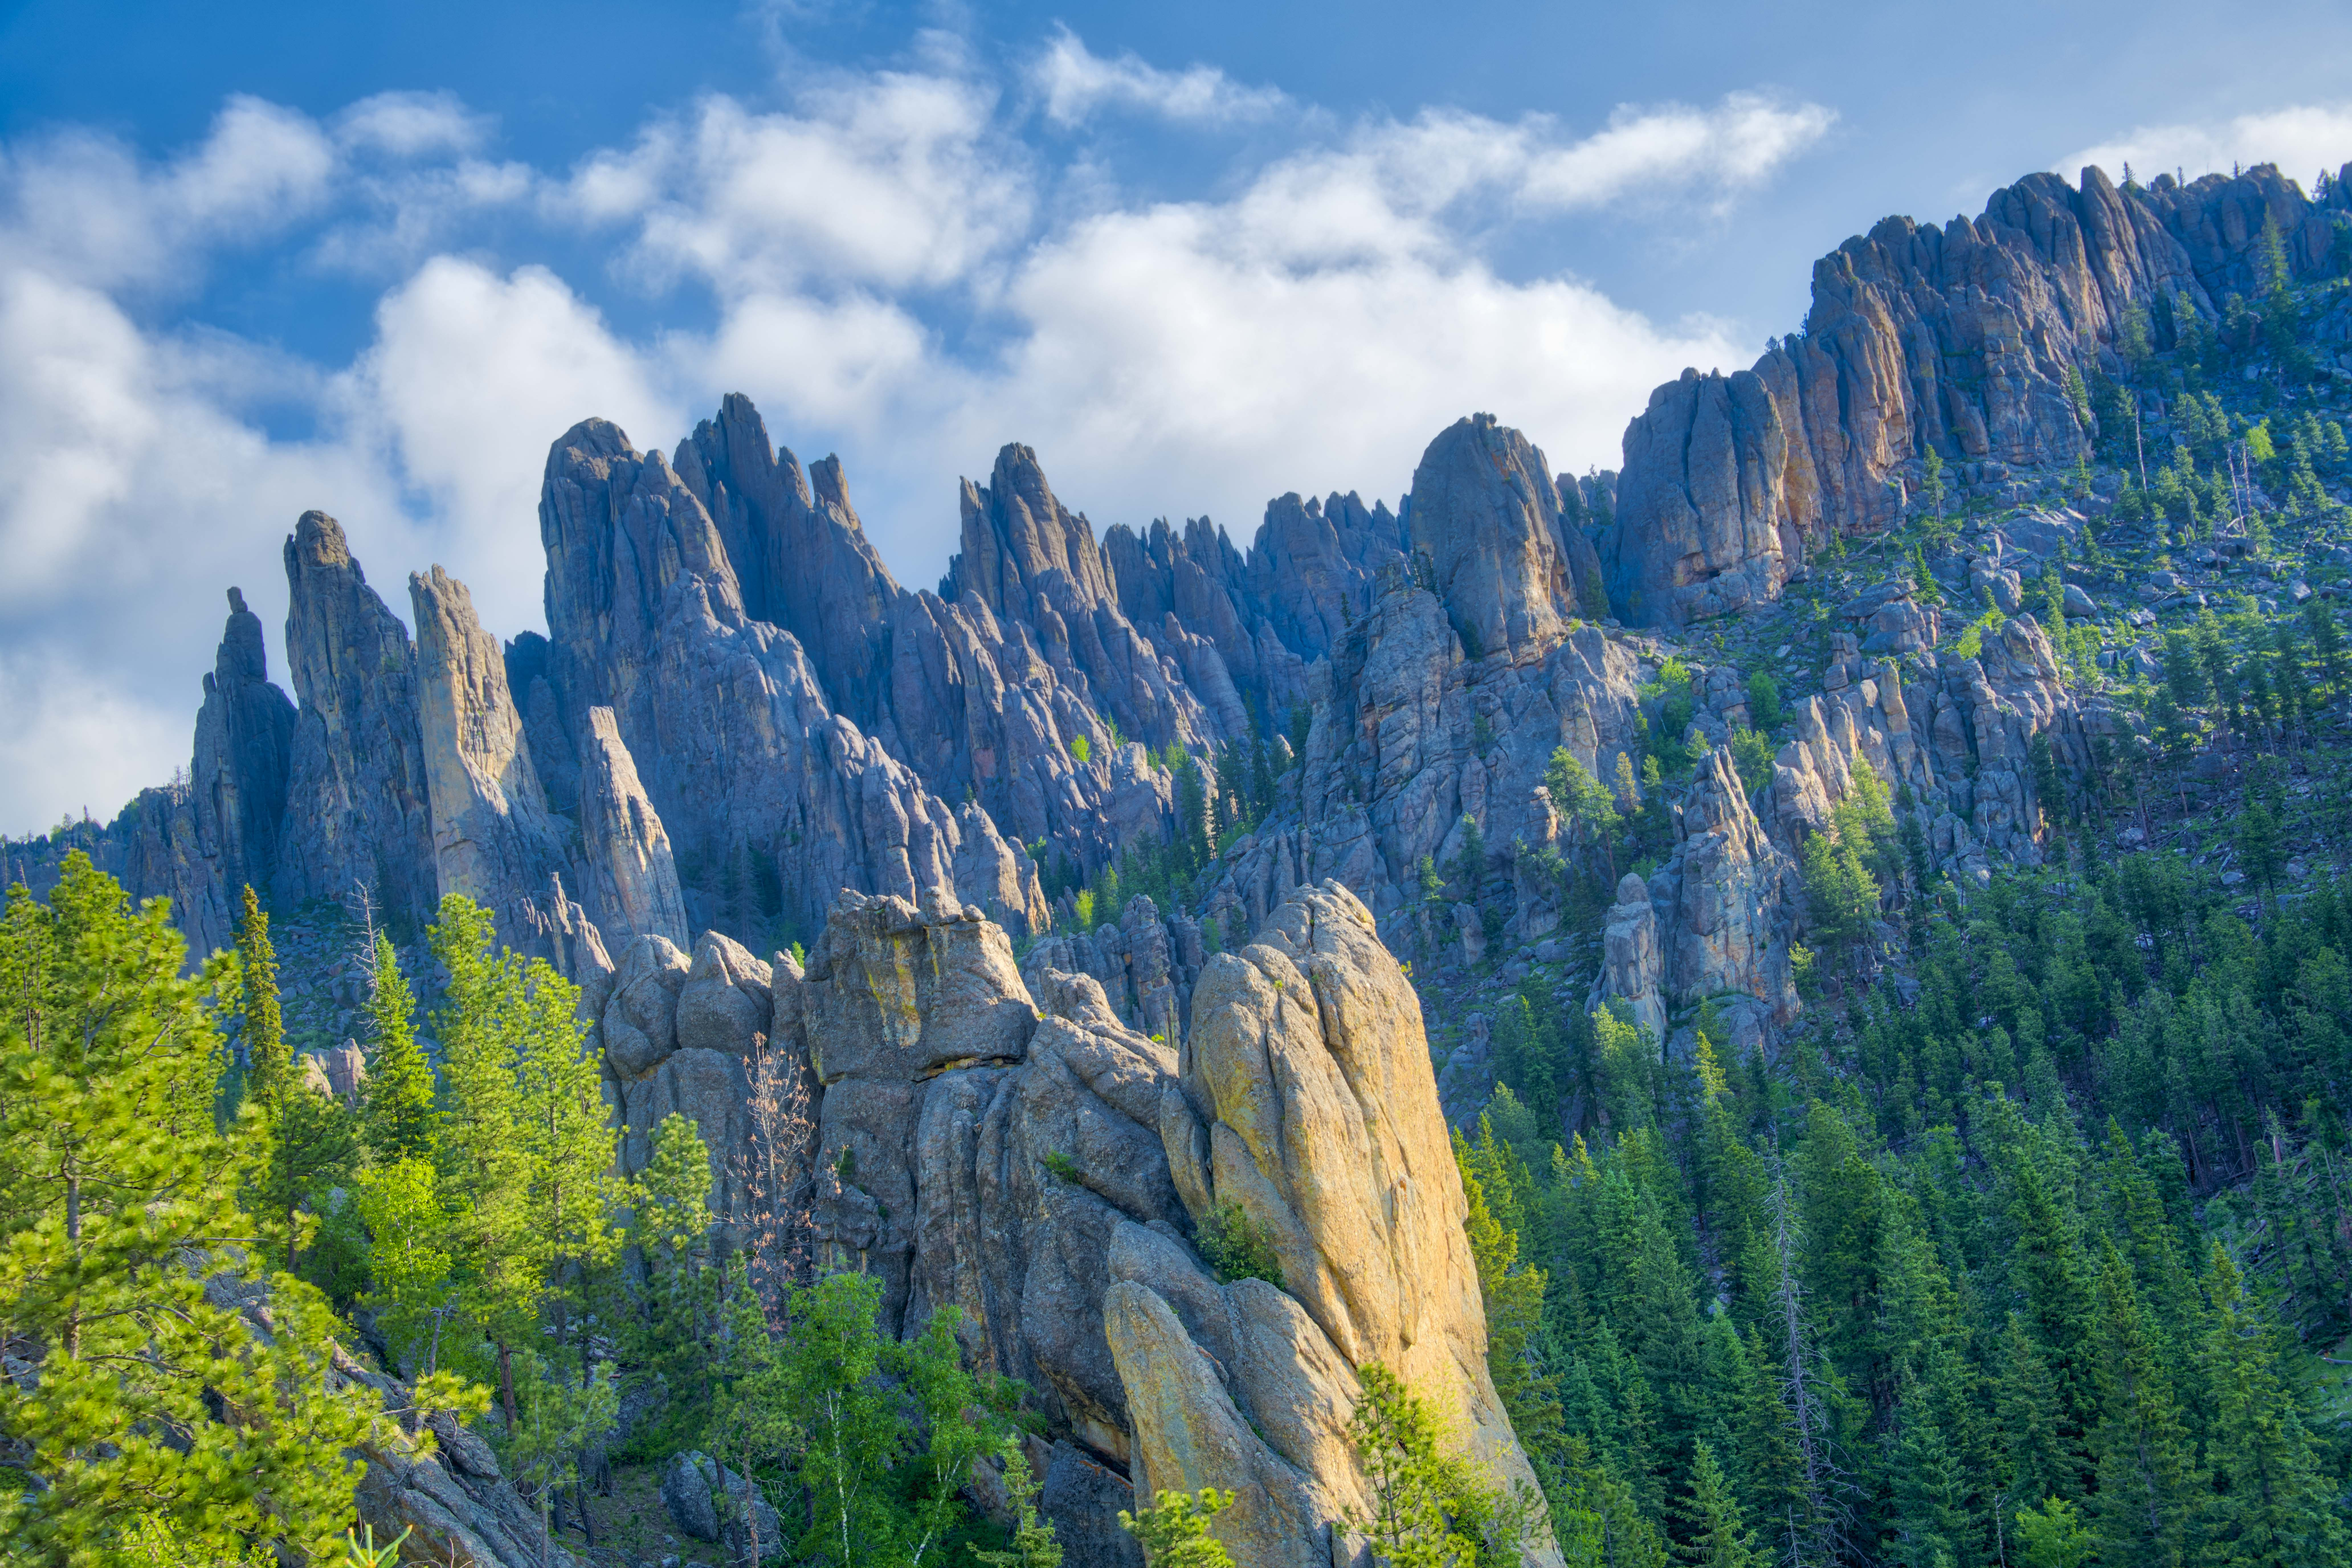 Cathedral Spires and Needles, Custer State Park Photographed by Tom Till